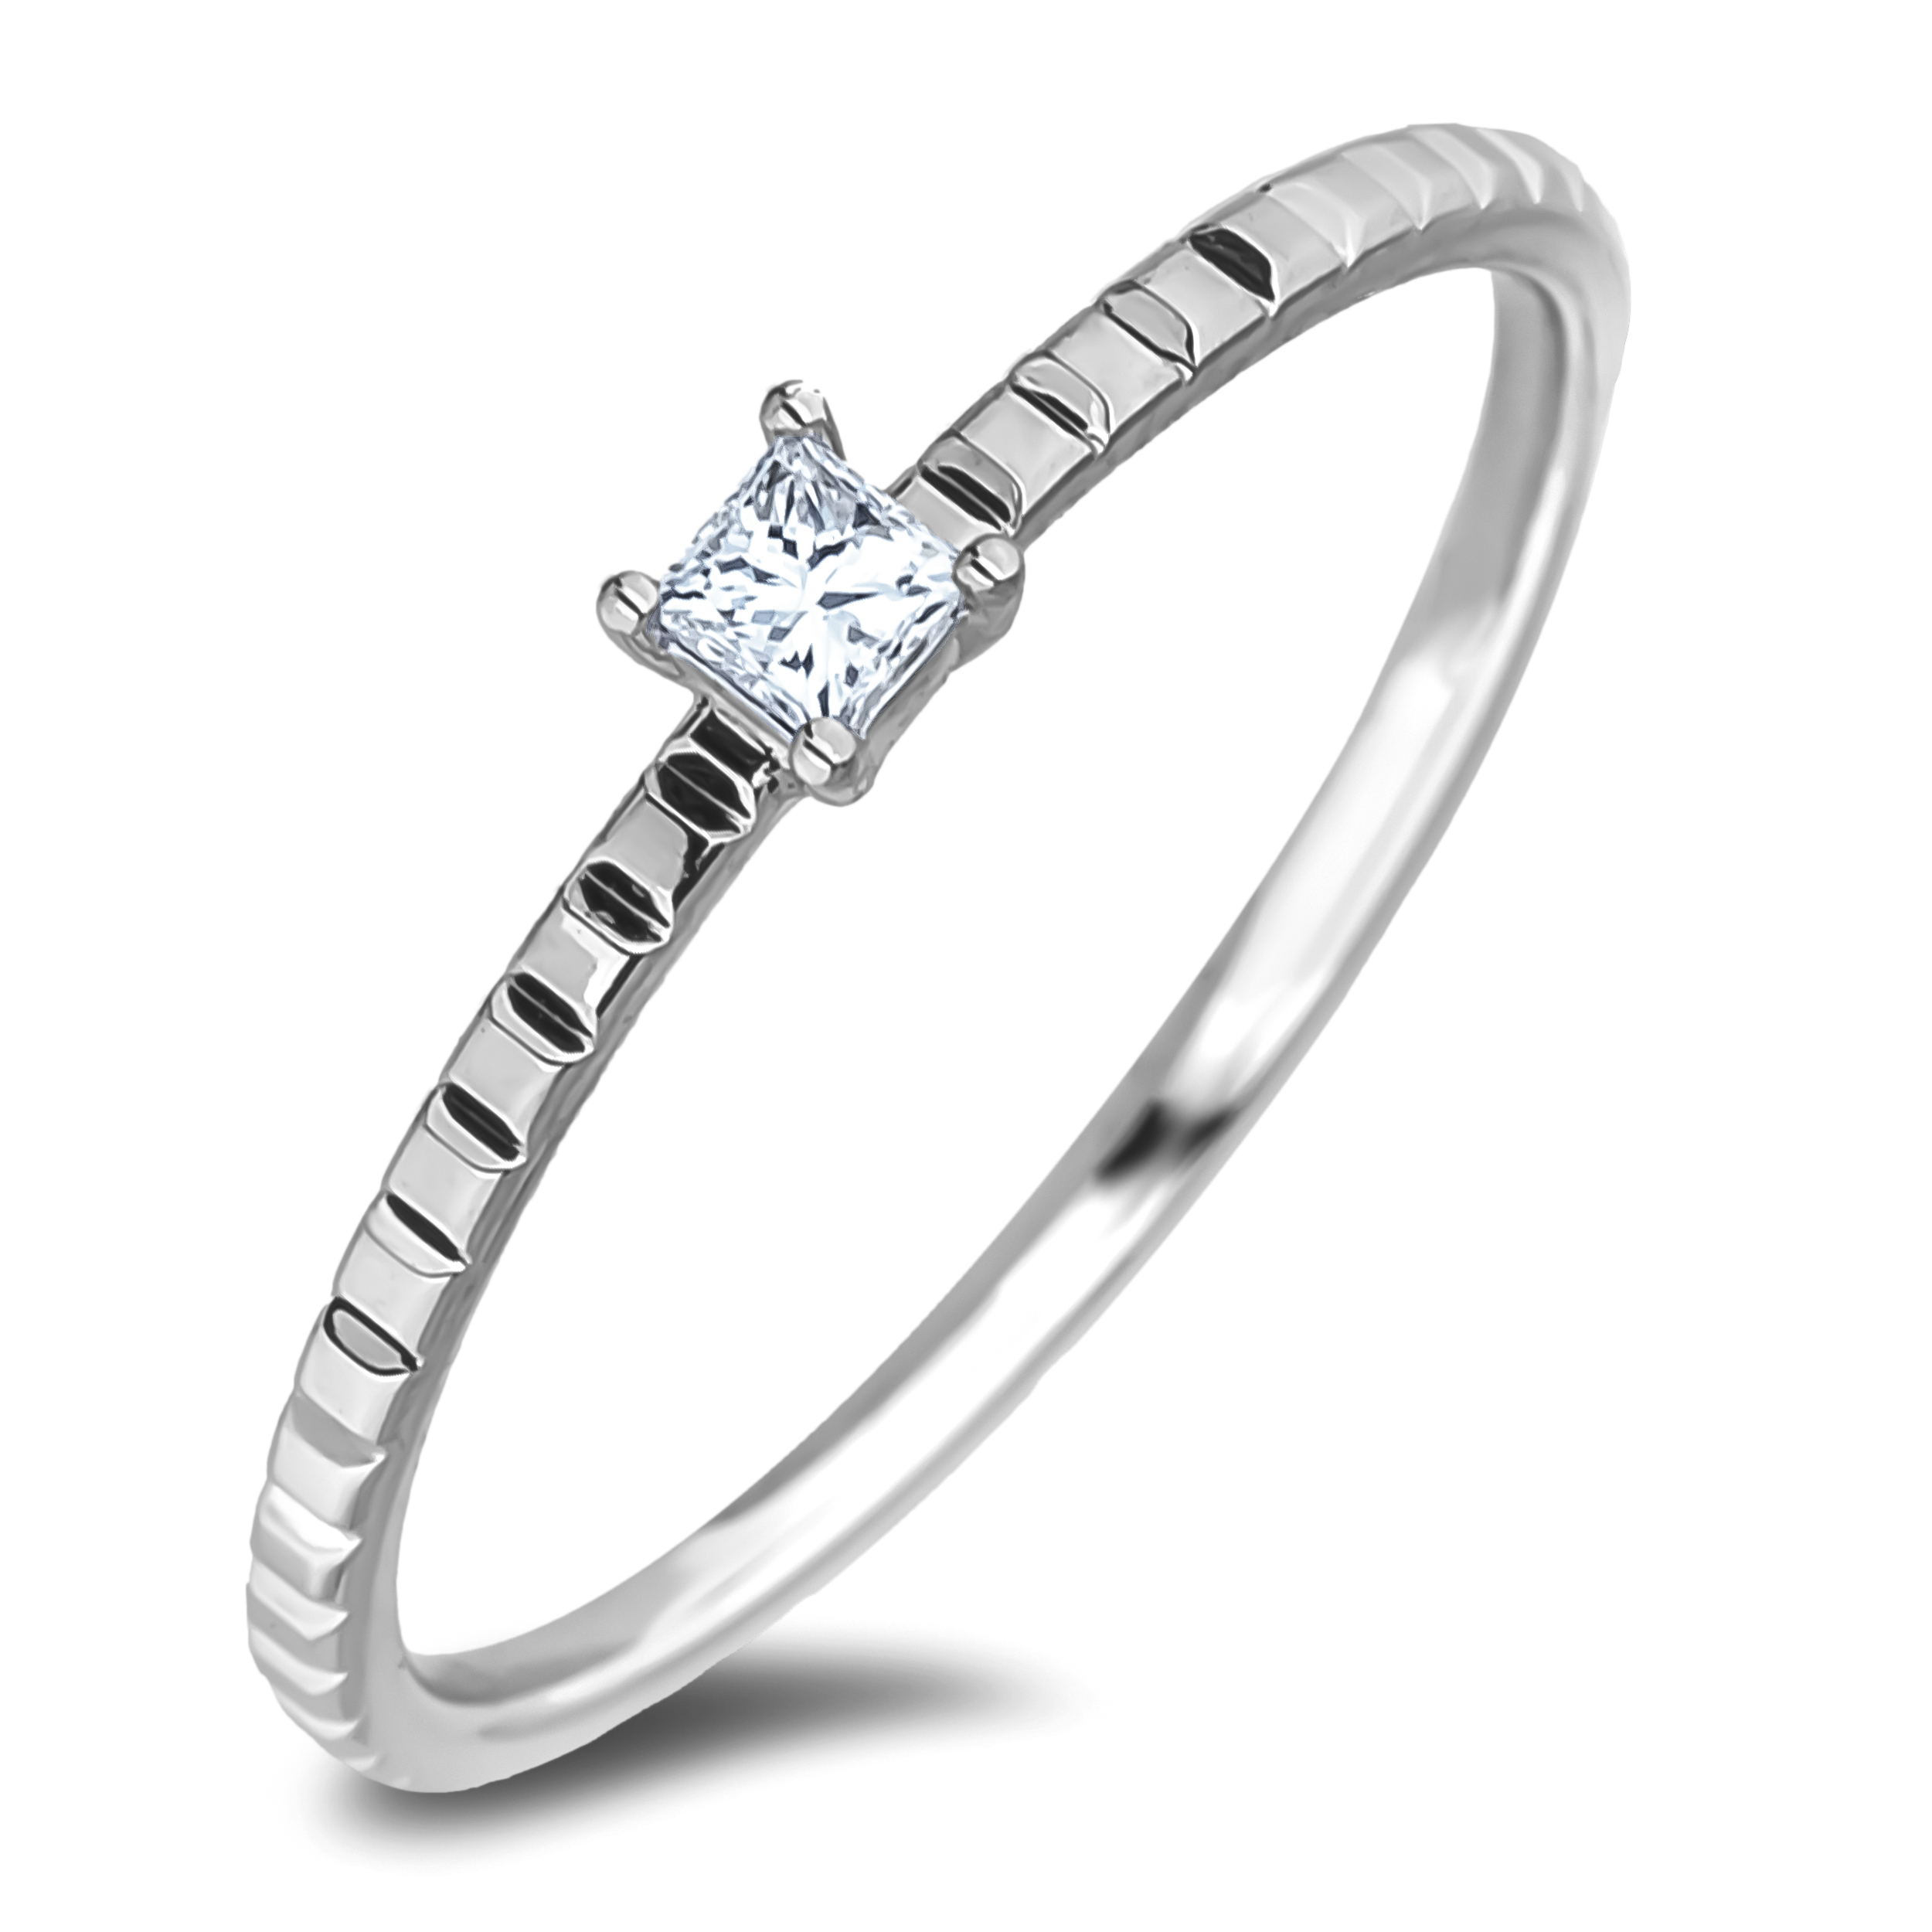 Diamond Solitaire Rings JS-AFDR1013L(2.3-F155) (Rings)